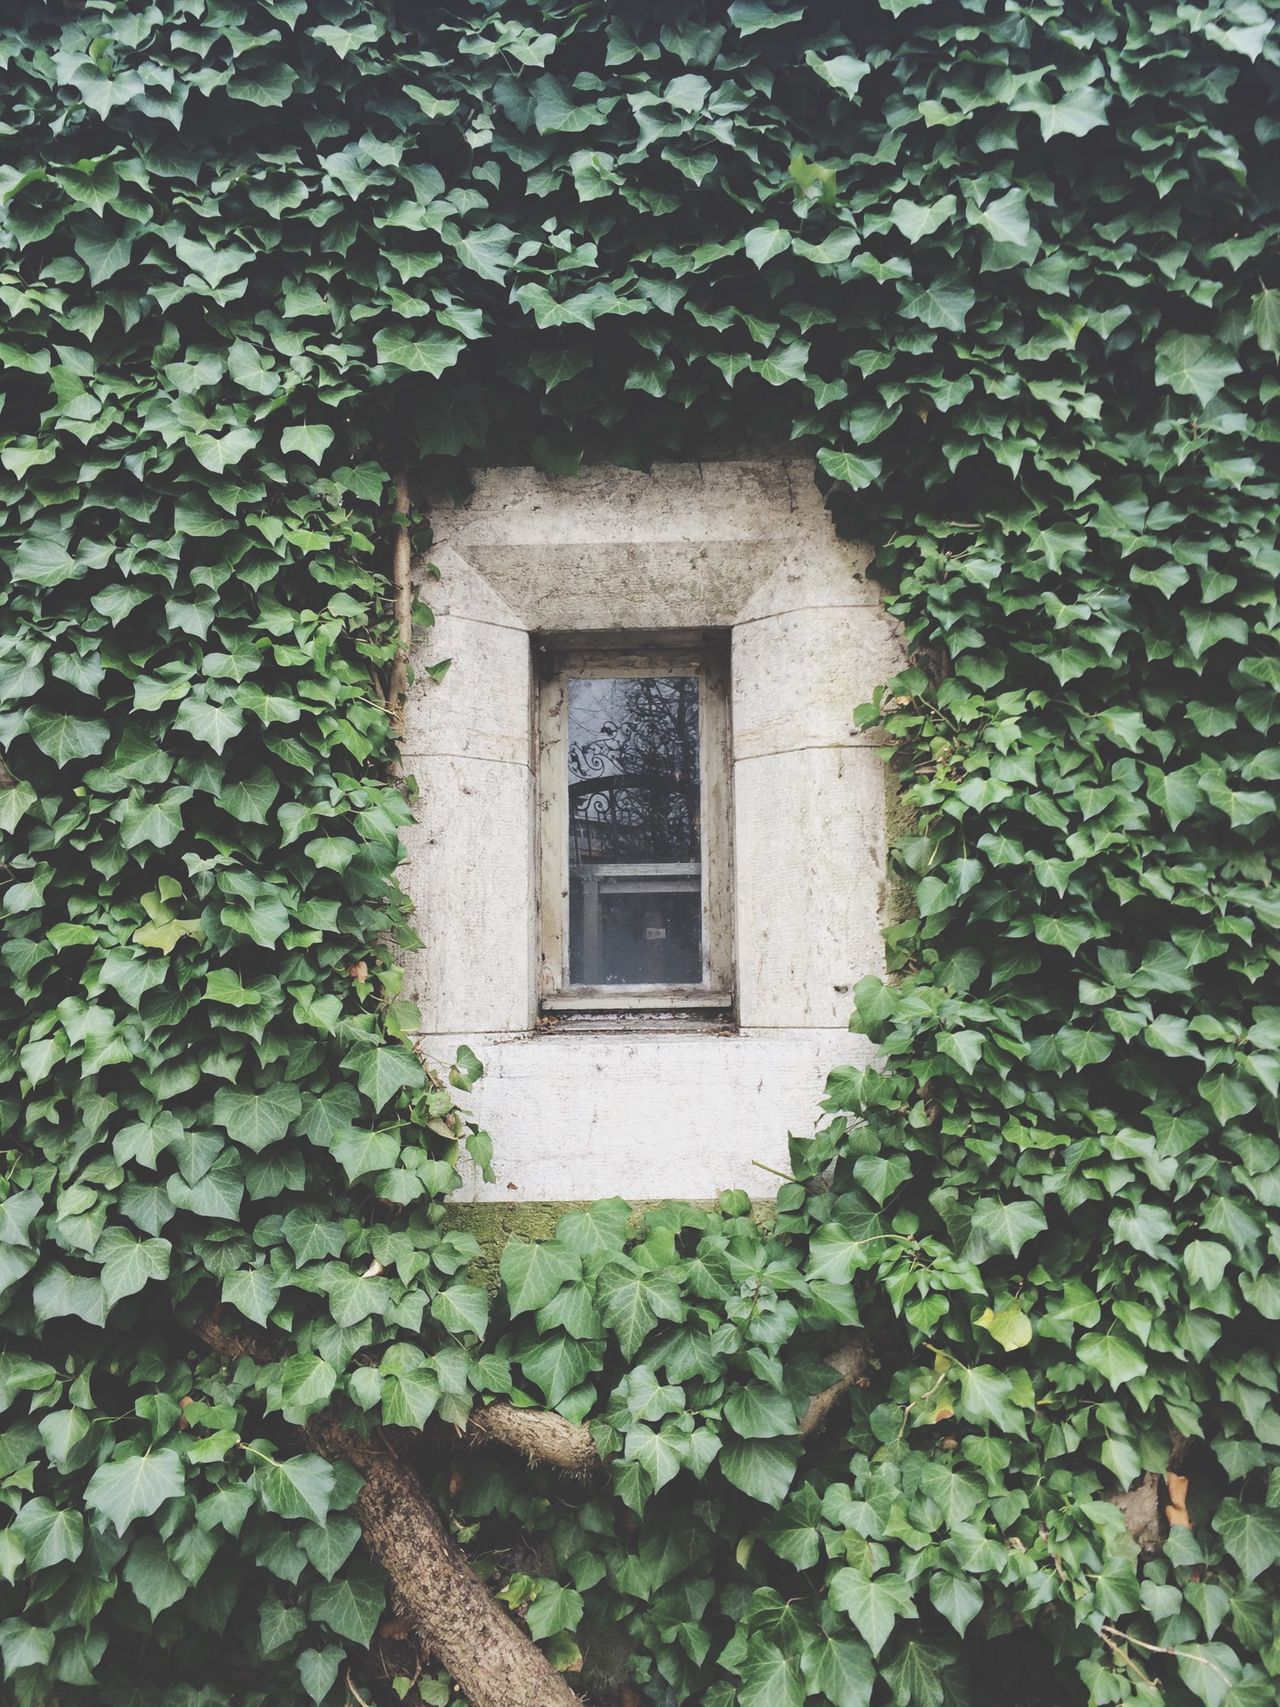 Window Ivy Hided Window Leaves Green GreenGreenGreen Bunker Military